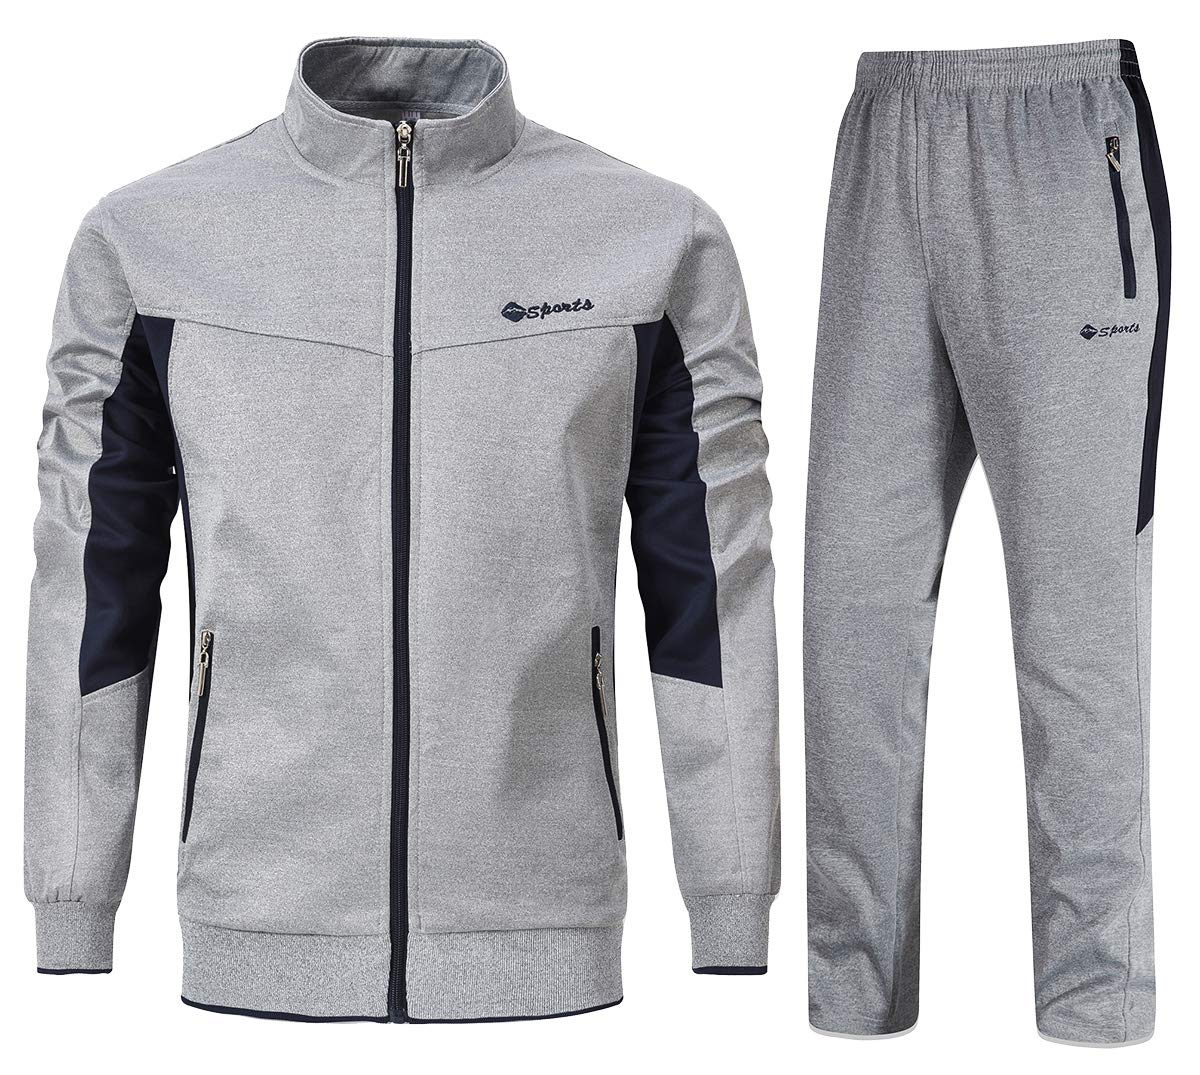 YSENTO Mens Sweat Suits 2 Pieces Full Zip Workout Jogging Sports Tracksuits Grey L by YSENTO